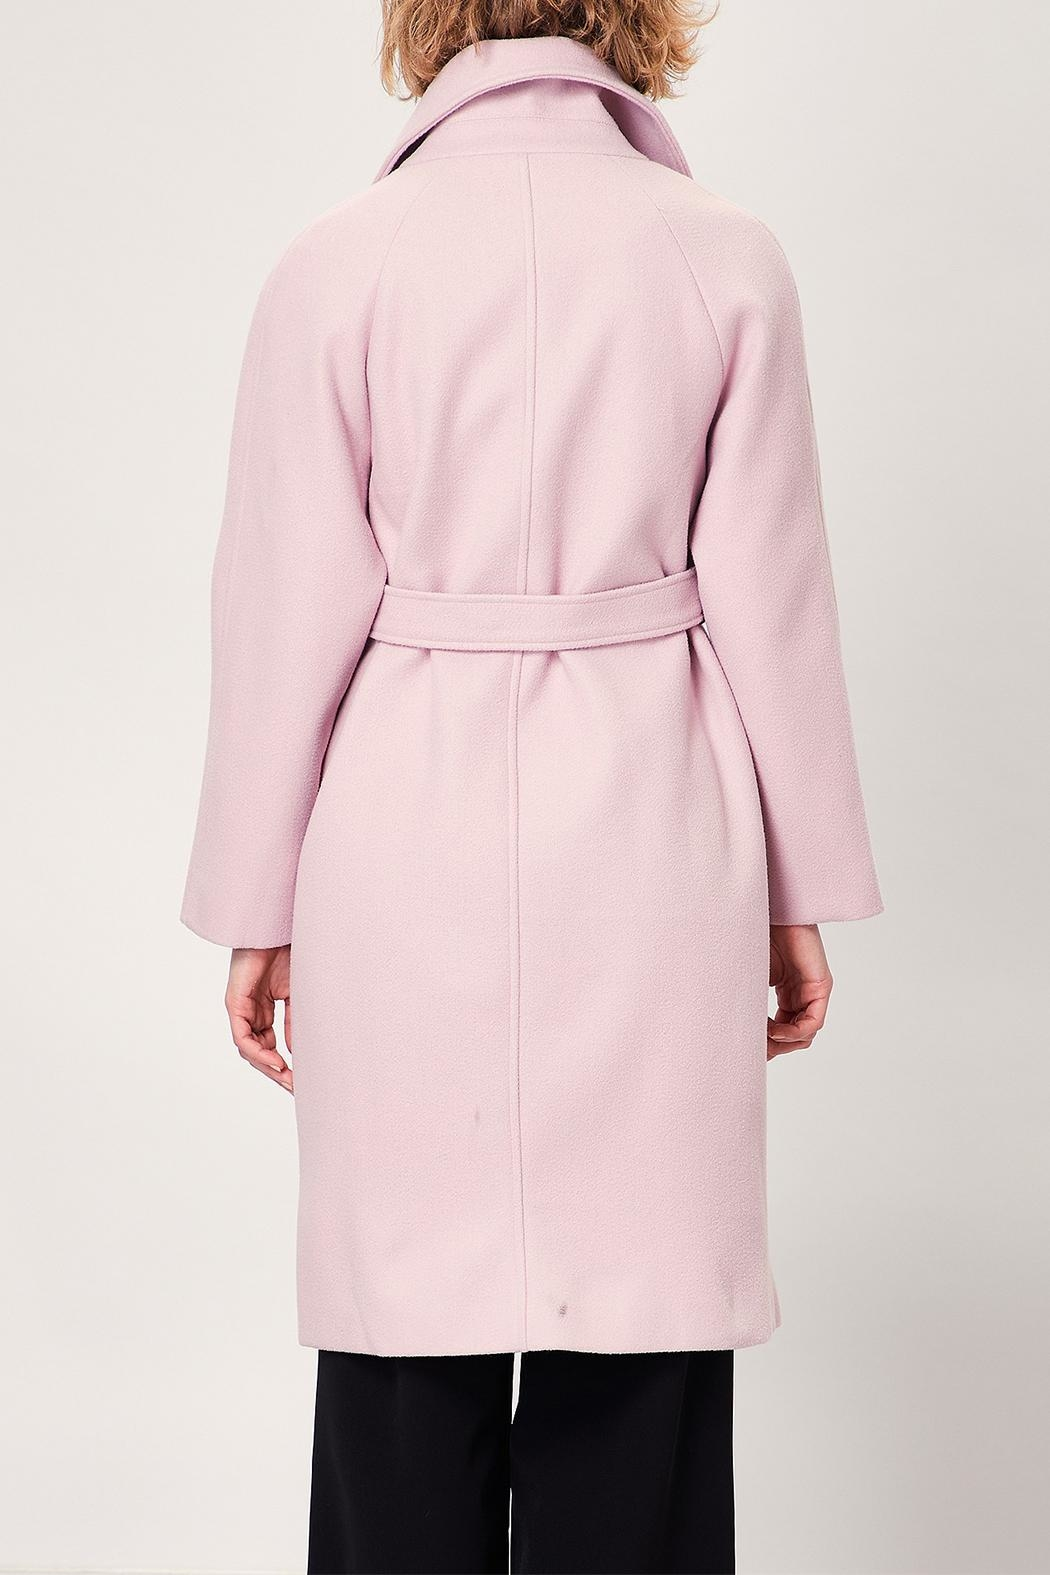 Angel Eyes Robin Trench Coat - Side Cropped Image